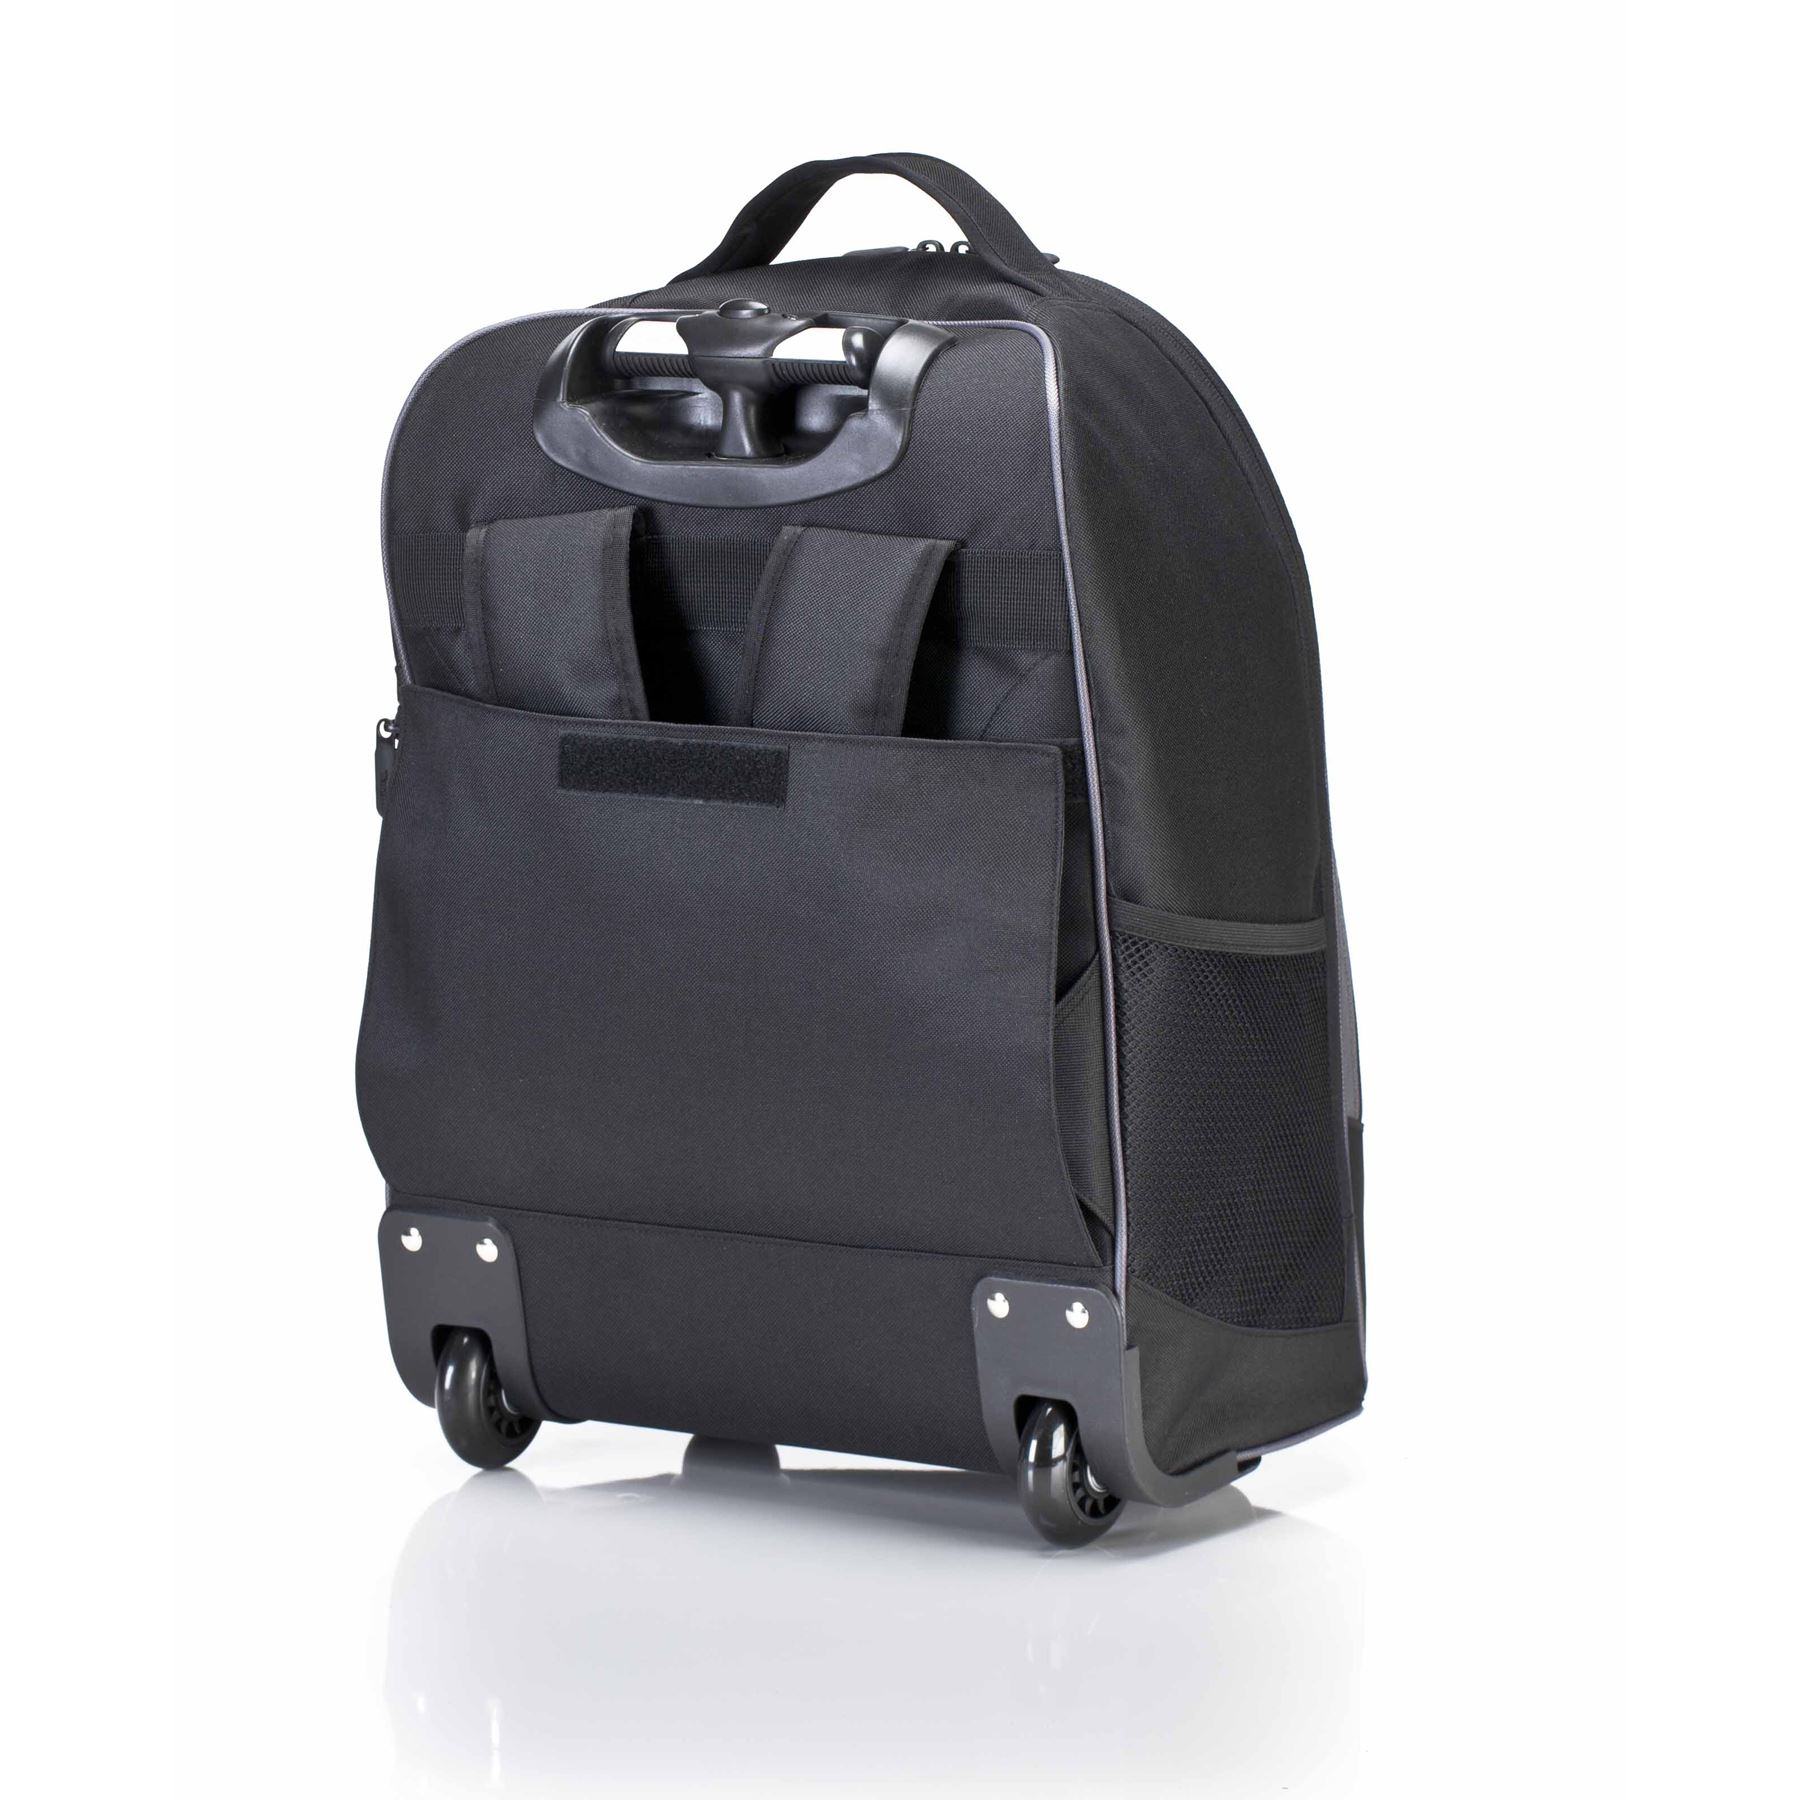 Up And Away Travel Bag